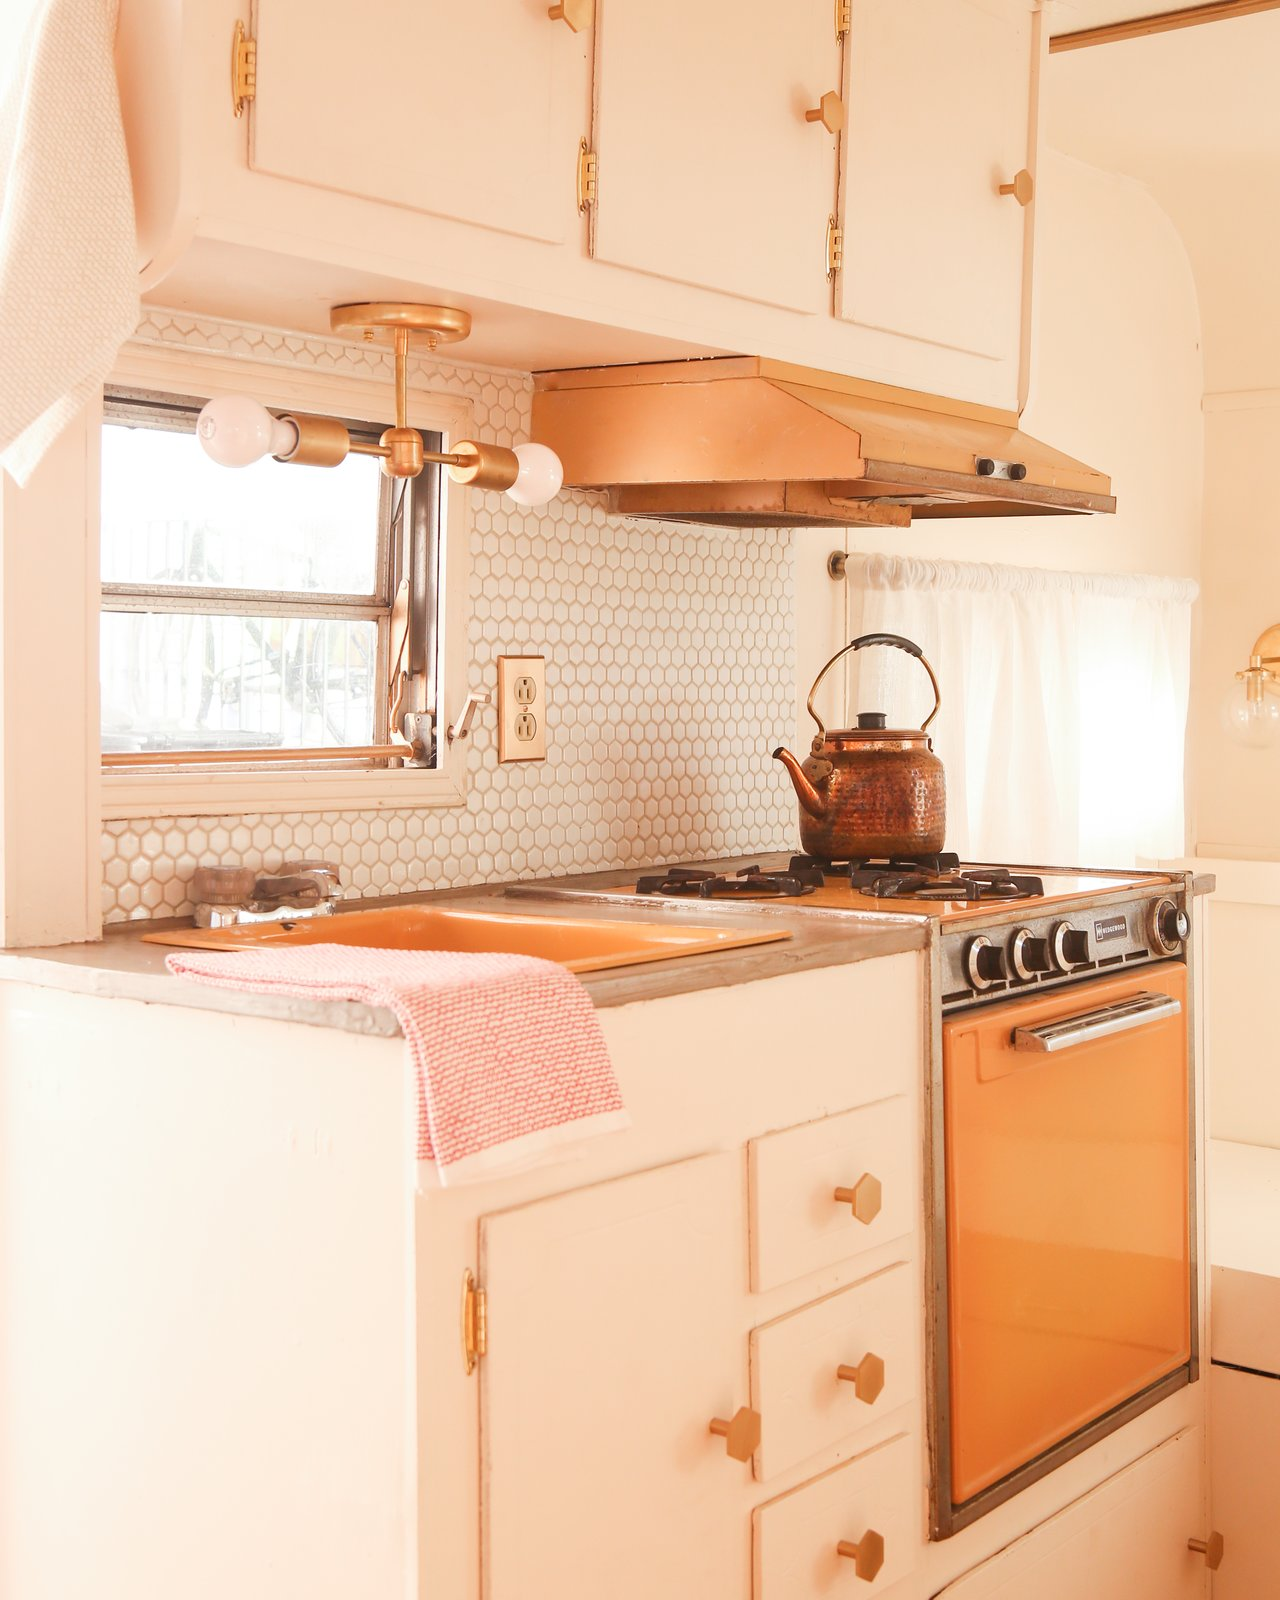 In the petite kitchenette, the original orange-tinted enamel of the sink and stove was spruced up with concrete overlay on the counters, a hex tile backsplash, and new brass accents. The original cabinets were refreshed with the same paint color as the interior walls, then adorned with brass hinges and hex-shaped pulls.